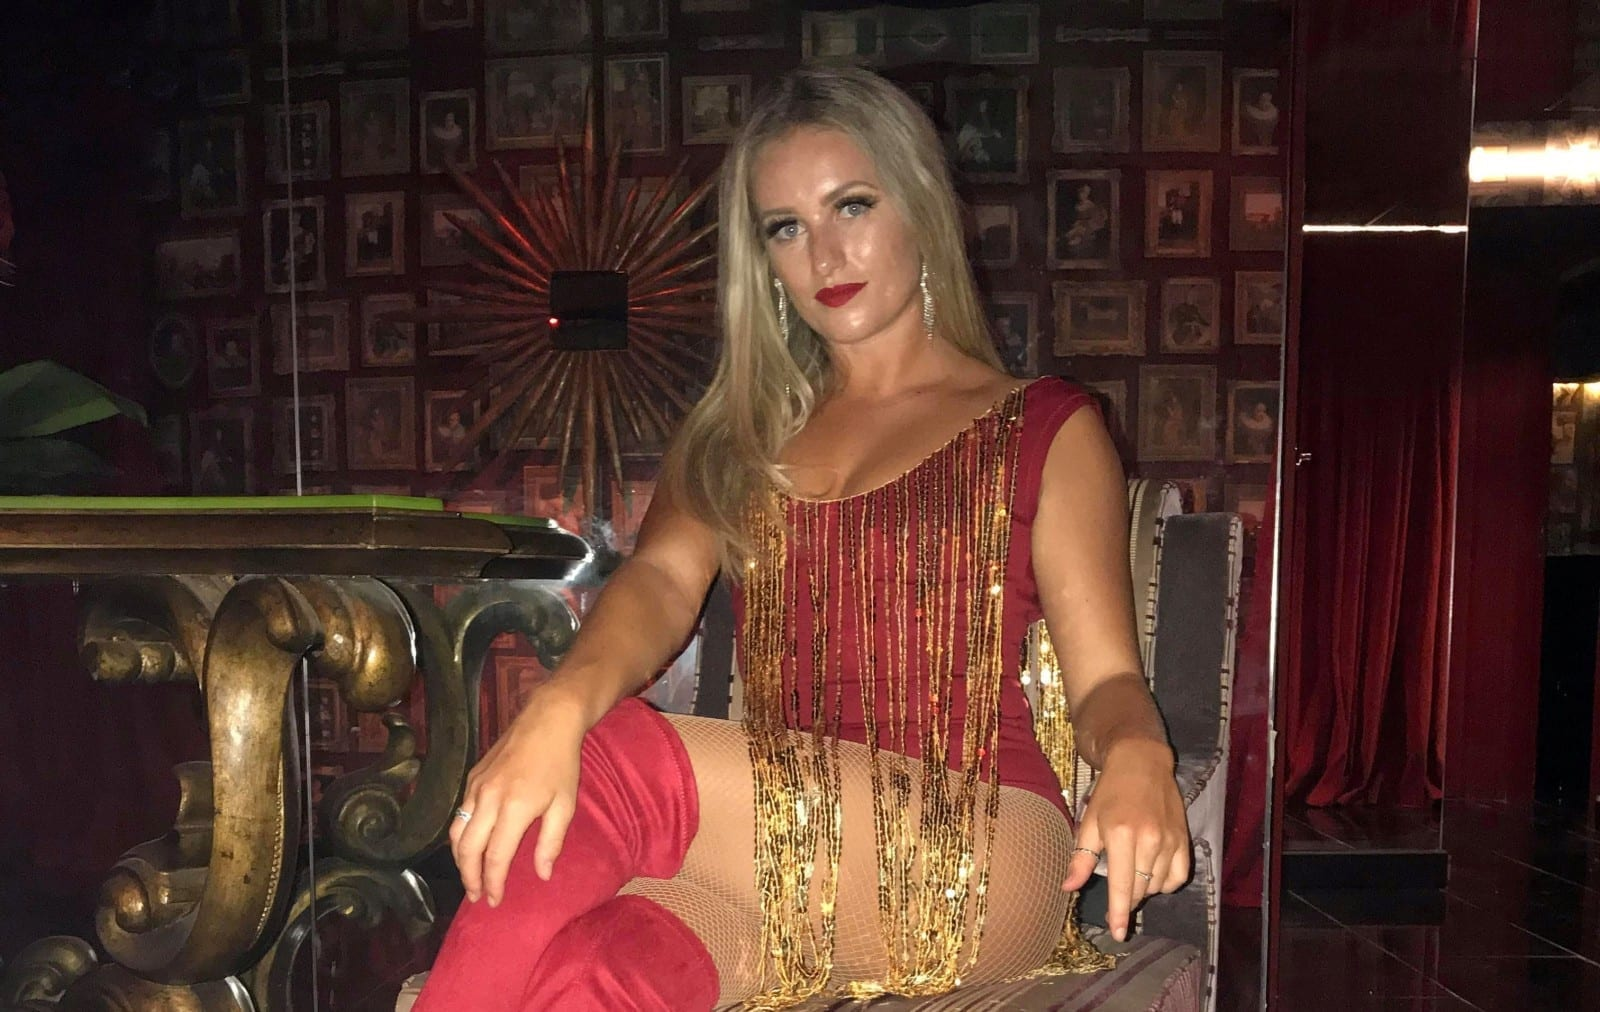 Professional Dancer In Recovery From Her Eating Disorder Sacked By Bosses Who Said She Was 'Too Fat'